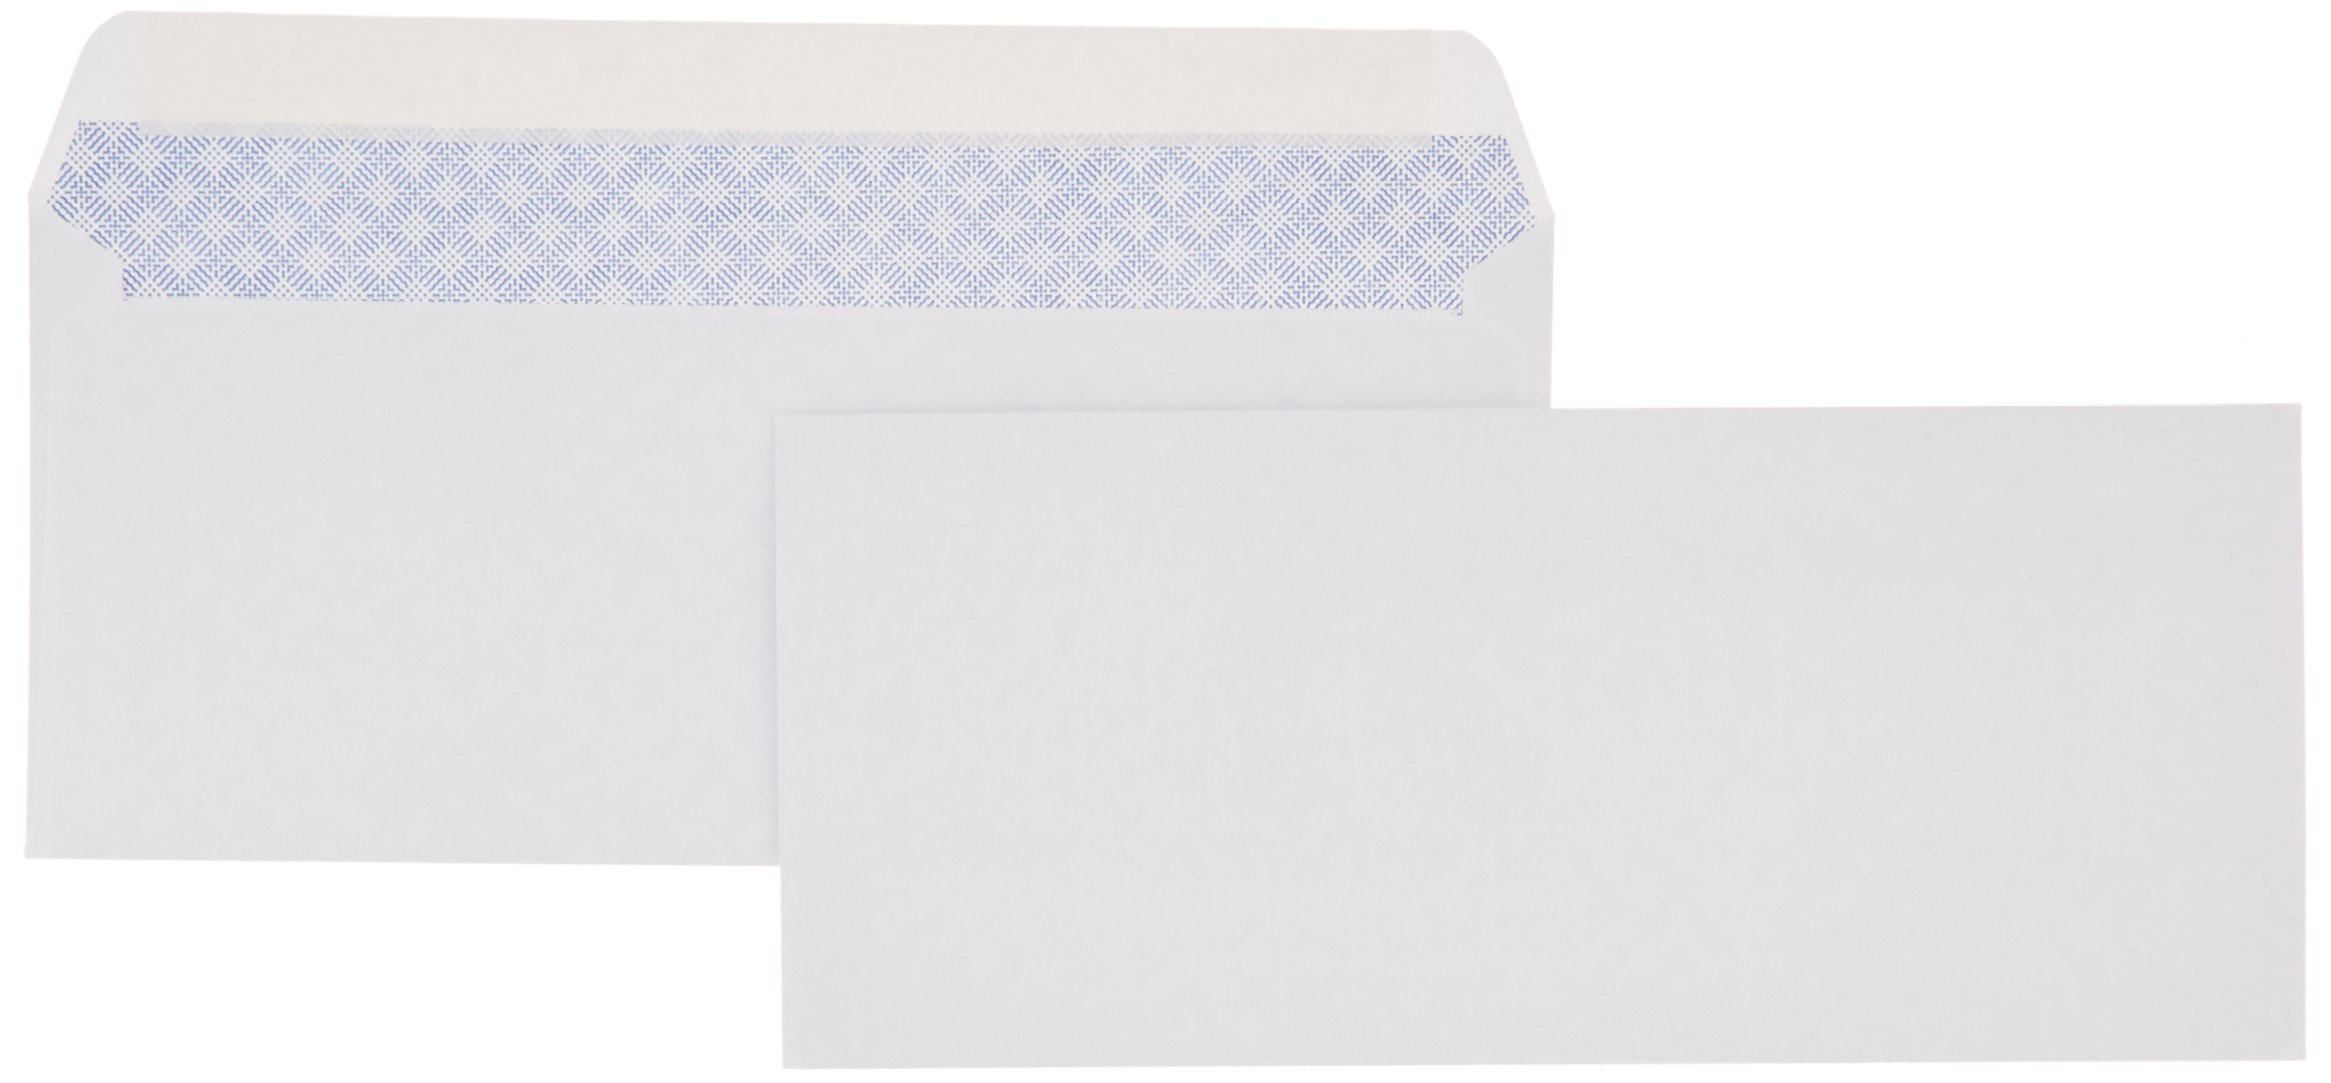 AmazonBasics #10 Security-Tinted Envelope, Peel & Seal, White, 500-Pack